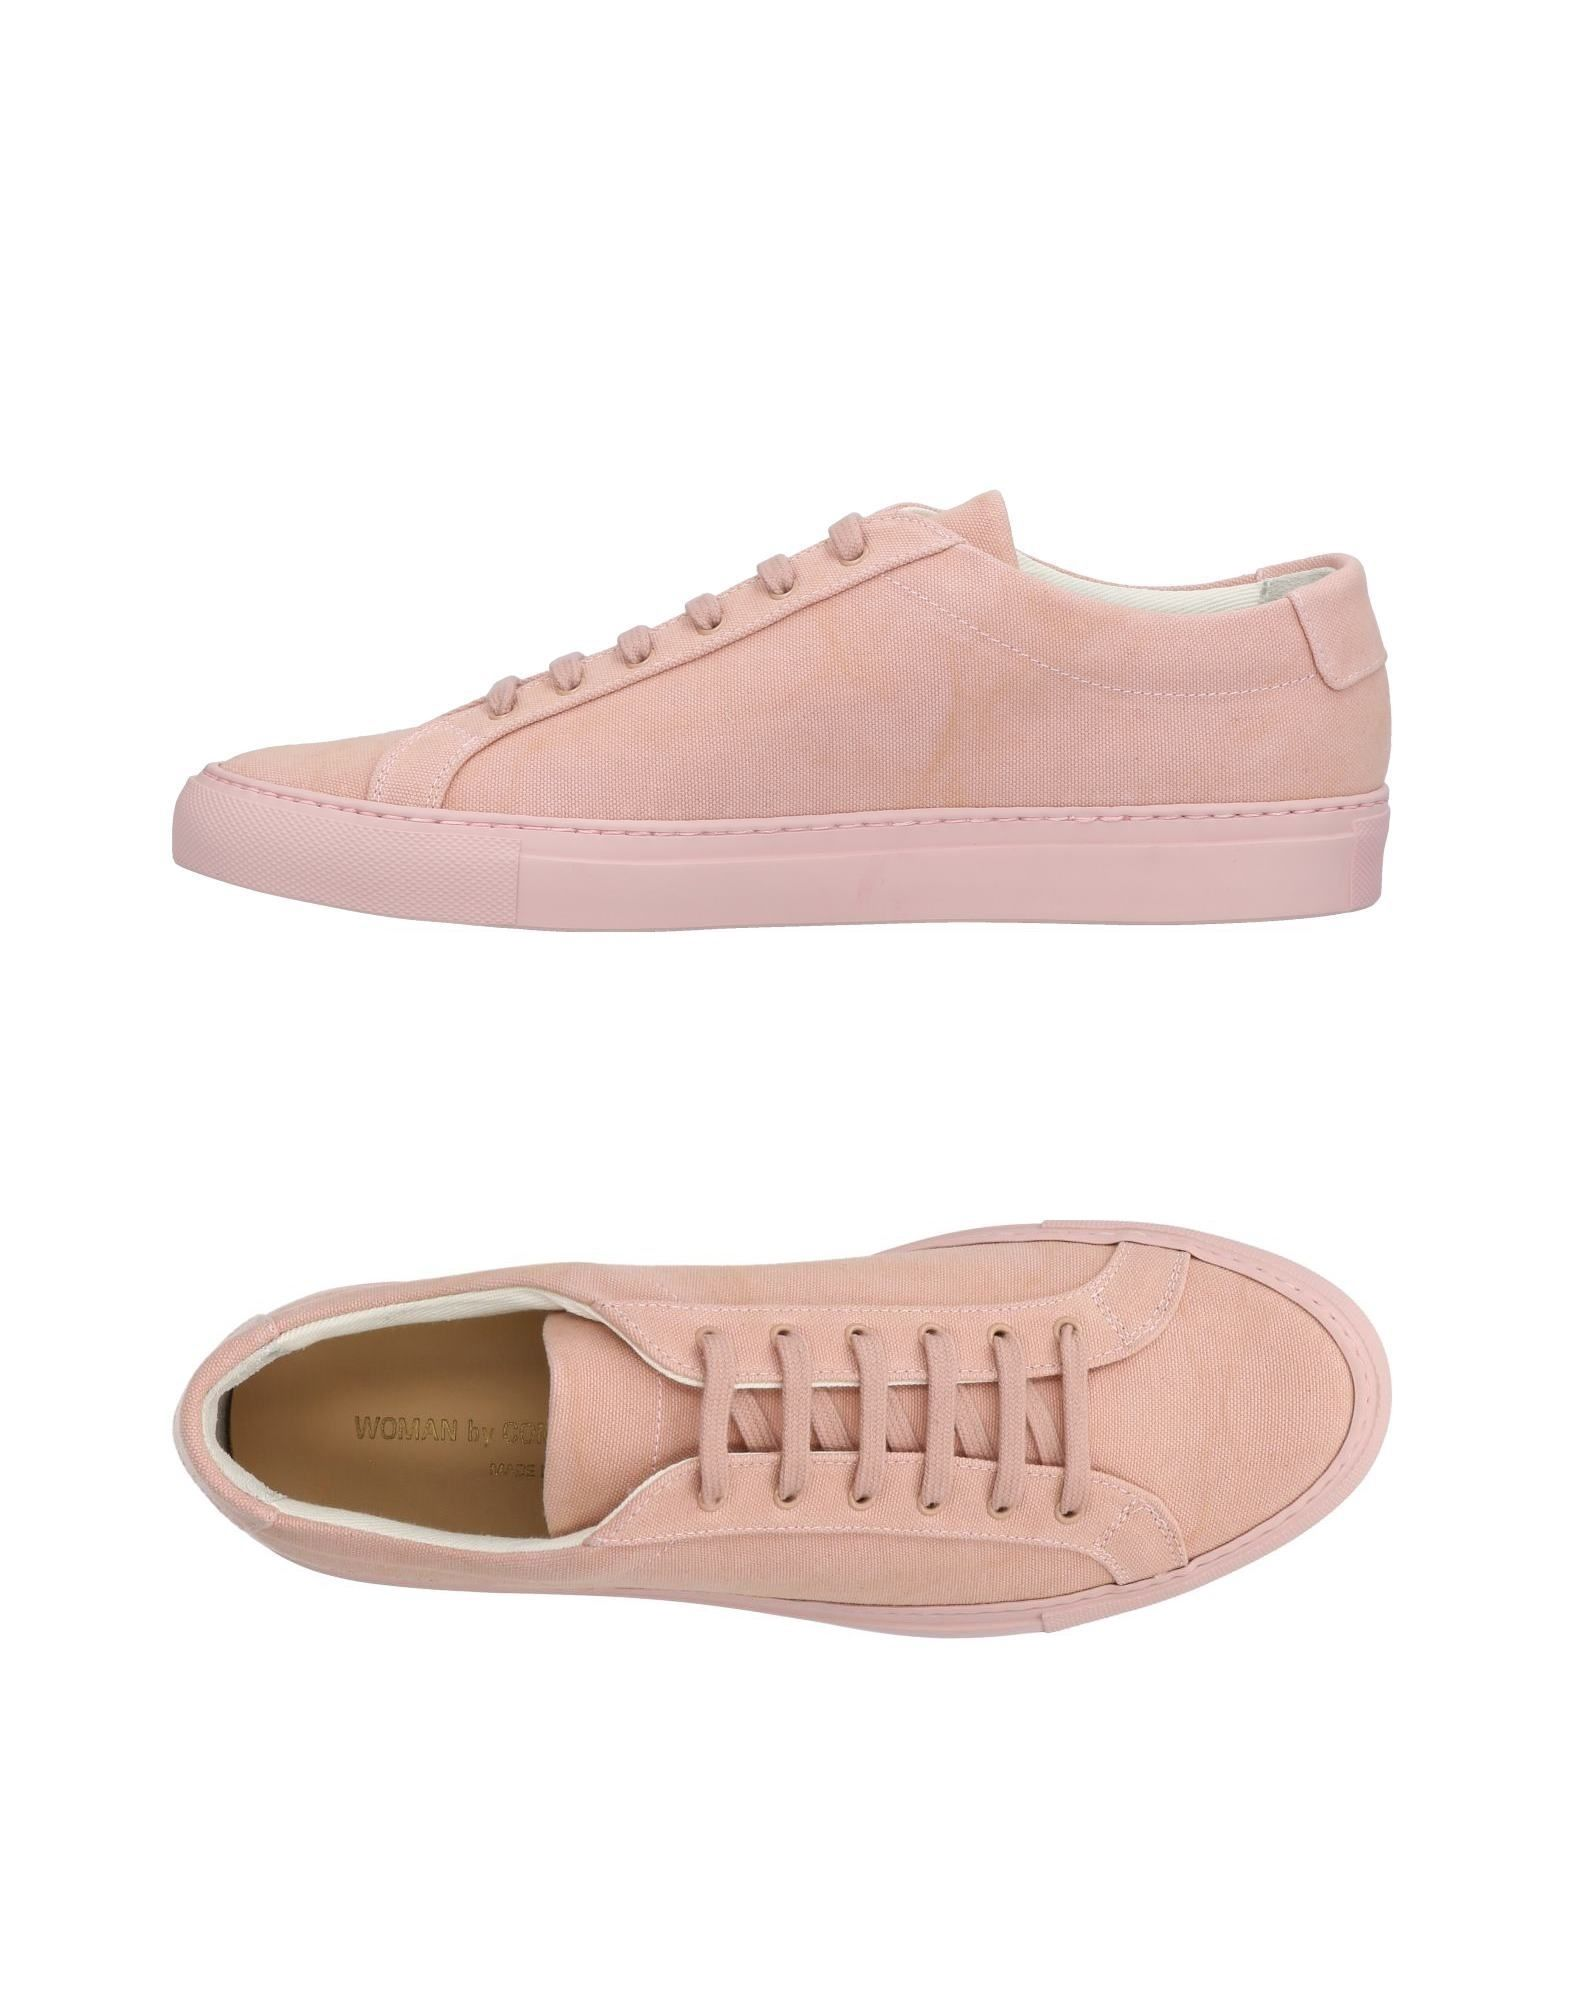 Sneakers Woman By Common Projects Donna - 11365312PN